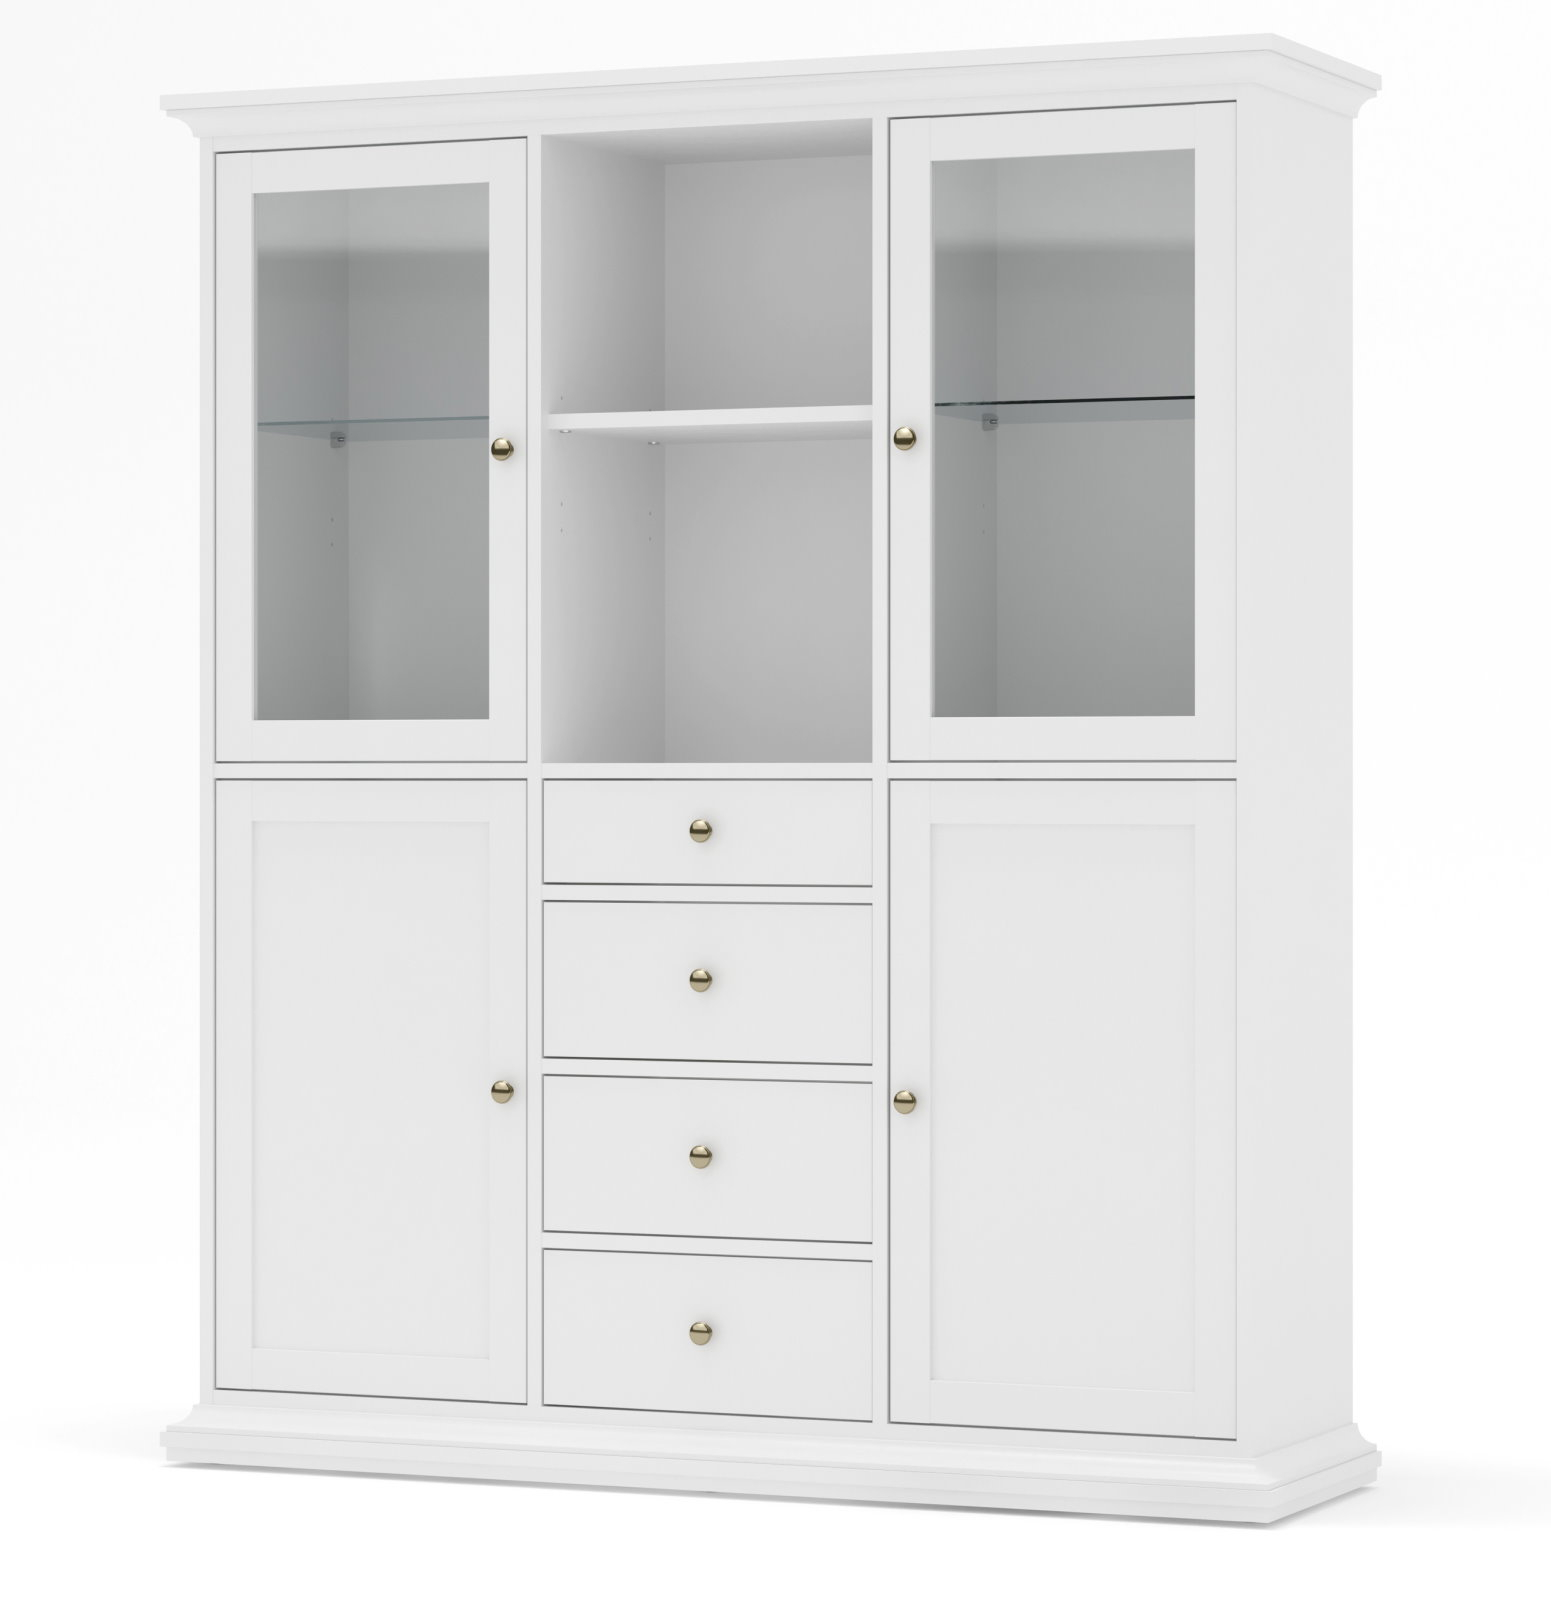 vitrinenschrank paris glas vitrine aufsatzbuffet buffet wei ebay. Black Bedroom Furniture Sets. Home Design Ideas